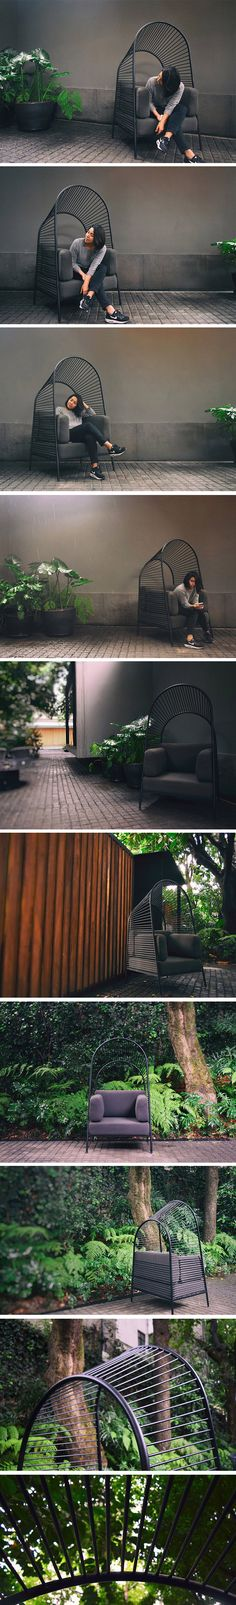 Felix is a miniature sofa with a mesmerizing canopy that takes inspiration from Mexican architectural designs of the 1950s in which paraboloid structures and arches defined the country's identity. Its pergola-style cover provides visual separation to the user without restricting visibility. This visual lightness is a perfect contrast to its robust frame.